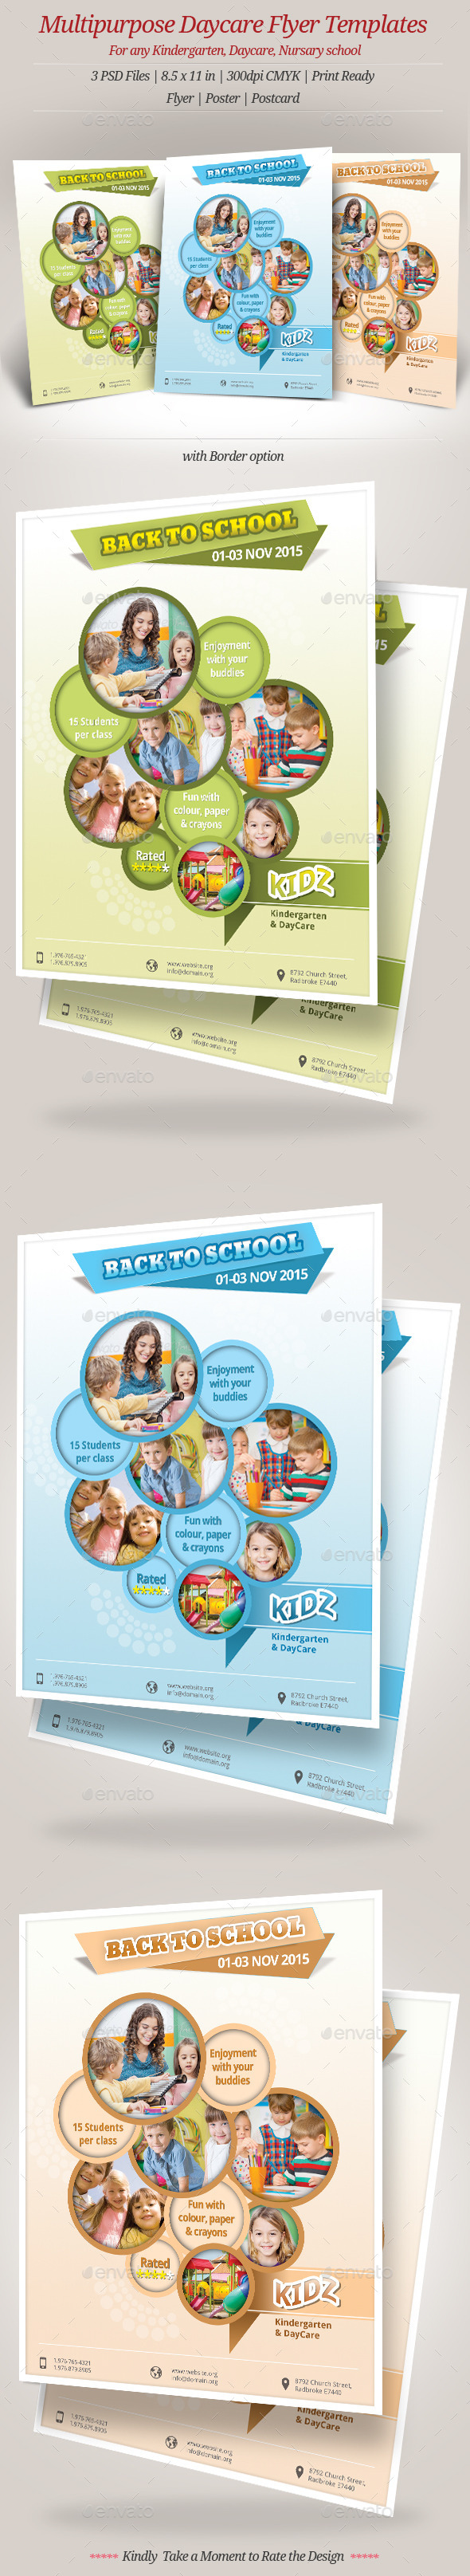 34+ Daycare Flyer Templates Free Example Design Ideas